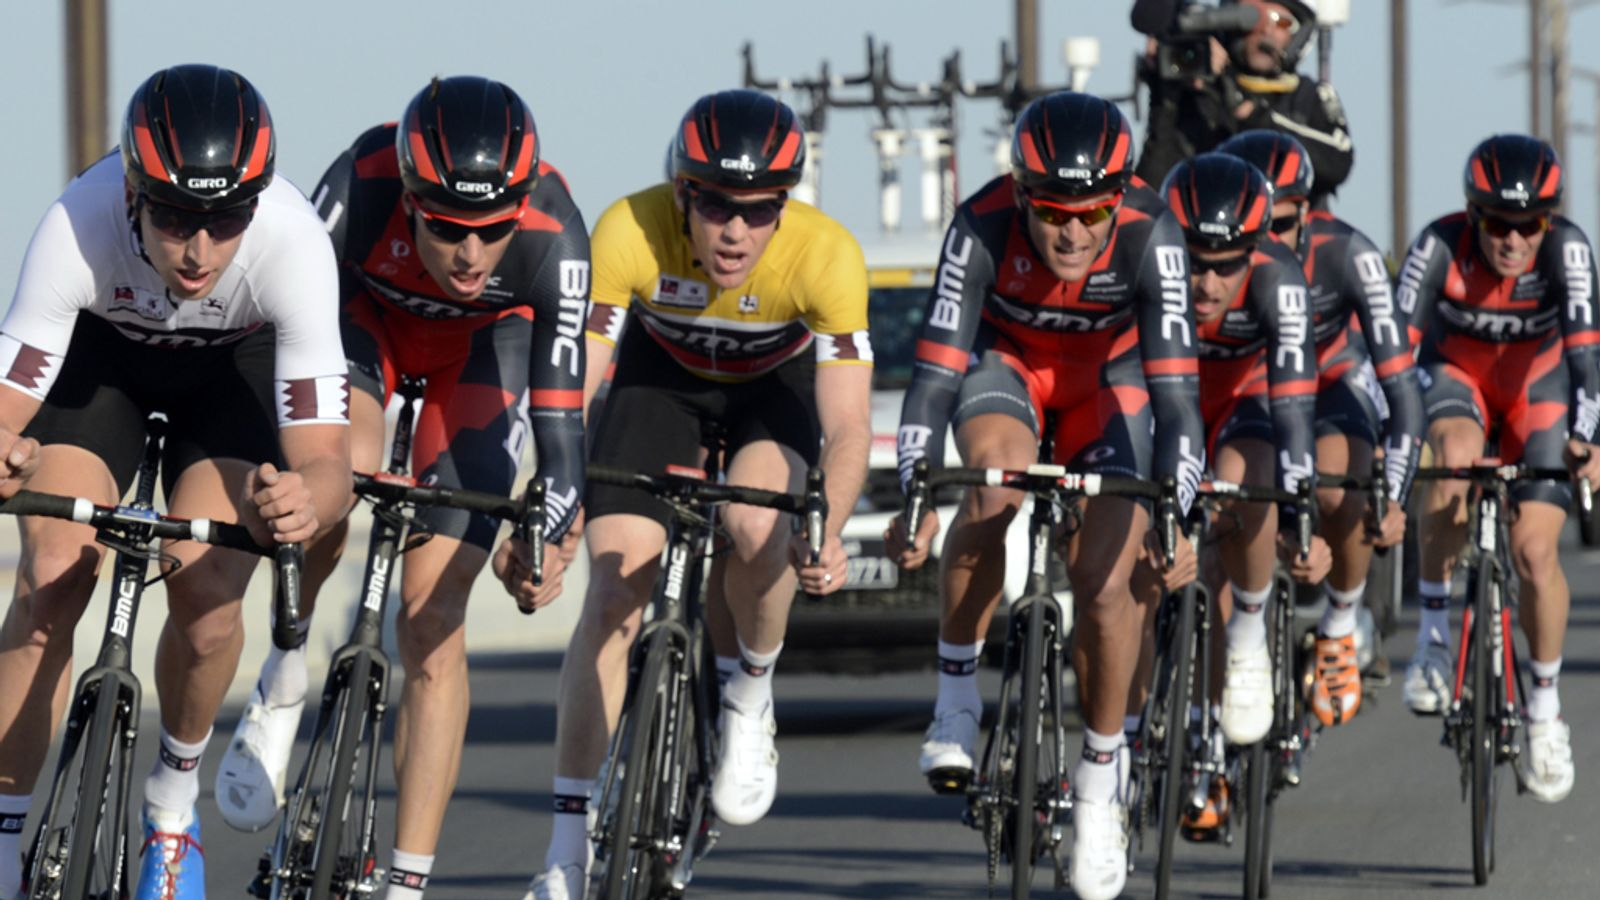 BMC win Tour of Qatar team time trial as Brent Bookwalter extends overall lead